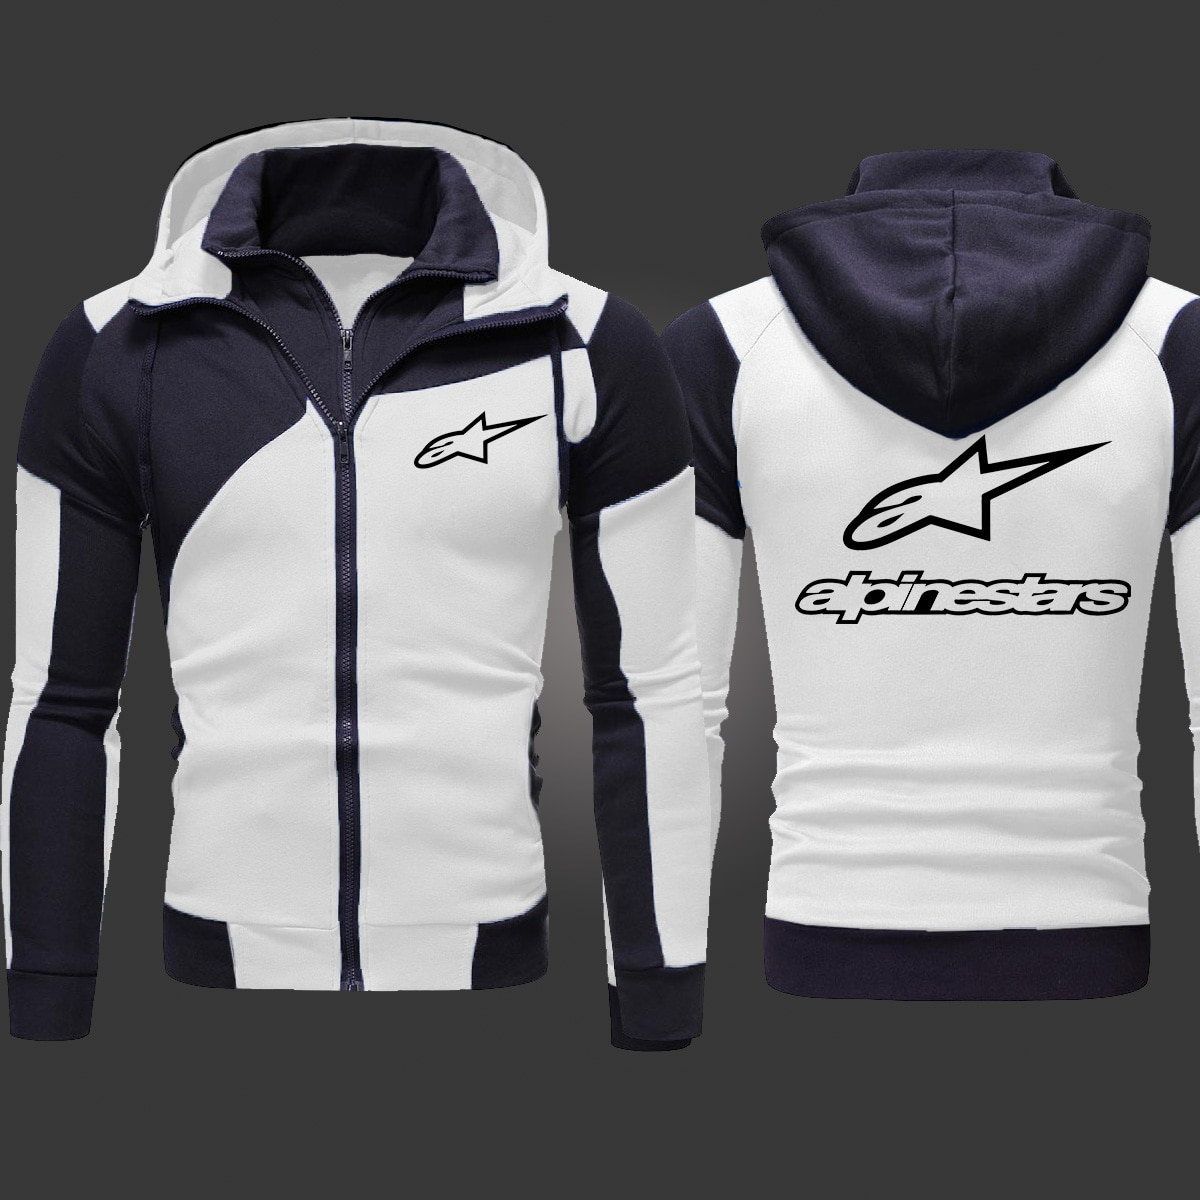 2021 Alpinestars Motorcycle Cycling Men's Fashion Outwear Jacket Zipper Hooded High Quality Hoody Athletic Wear Casual Hoodies